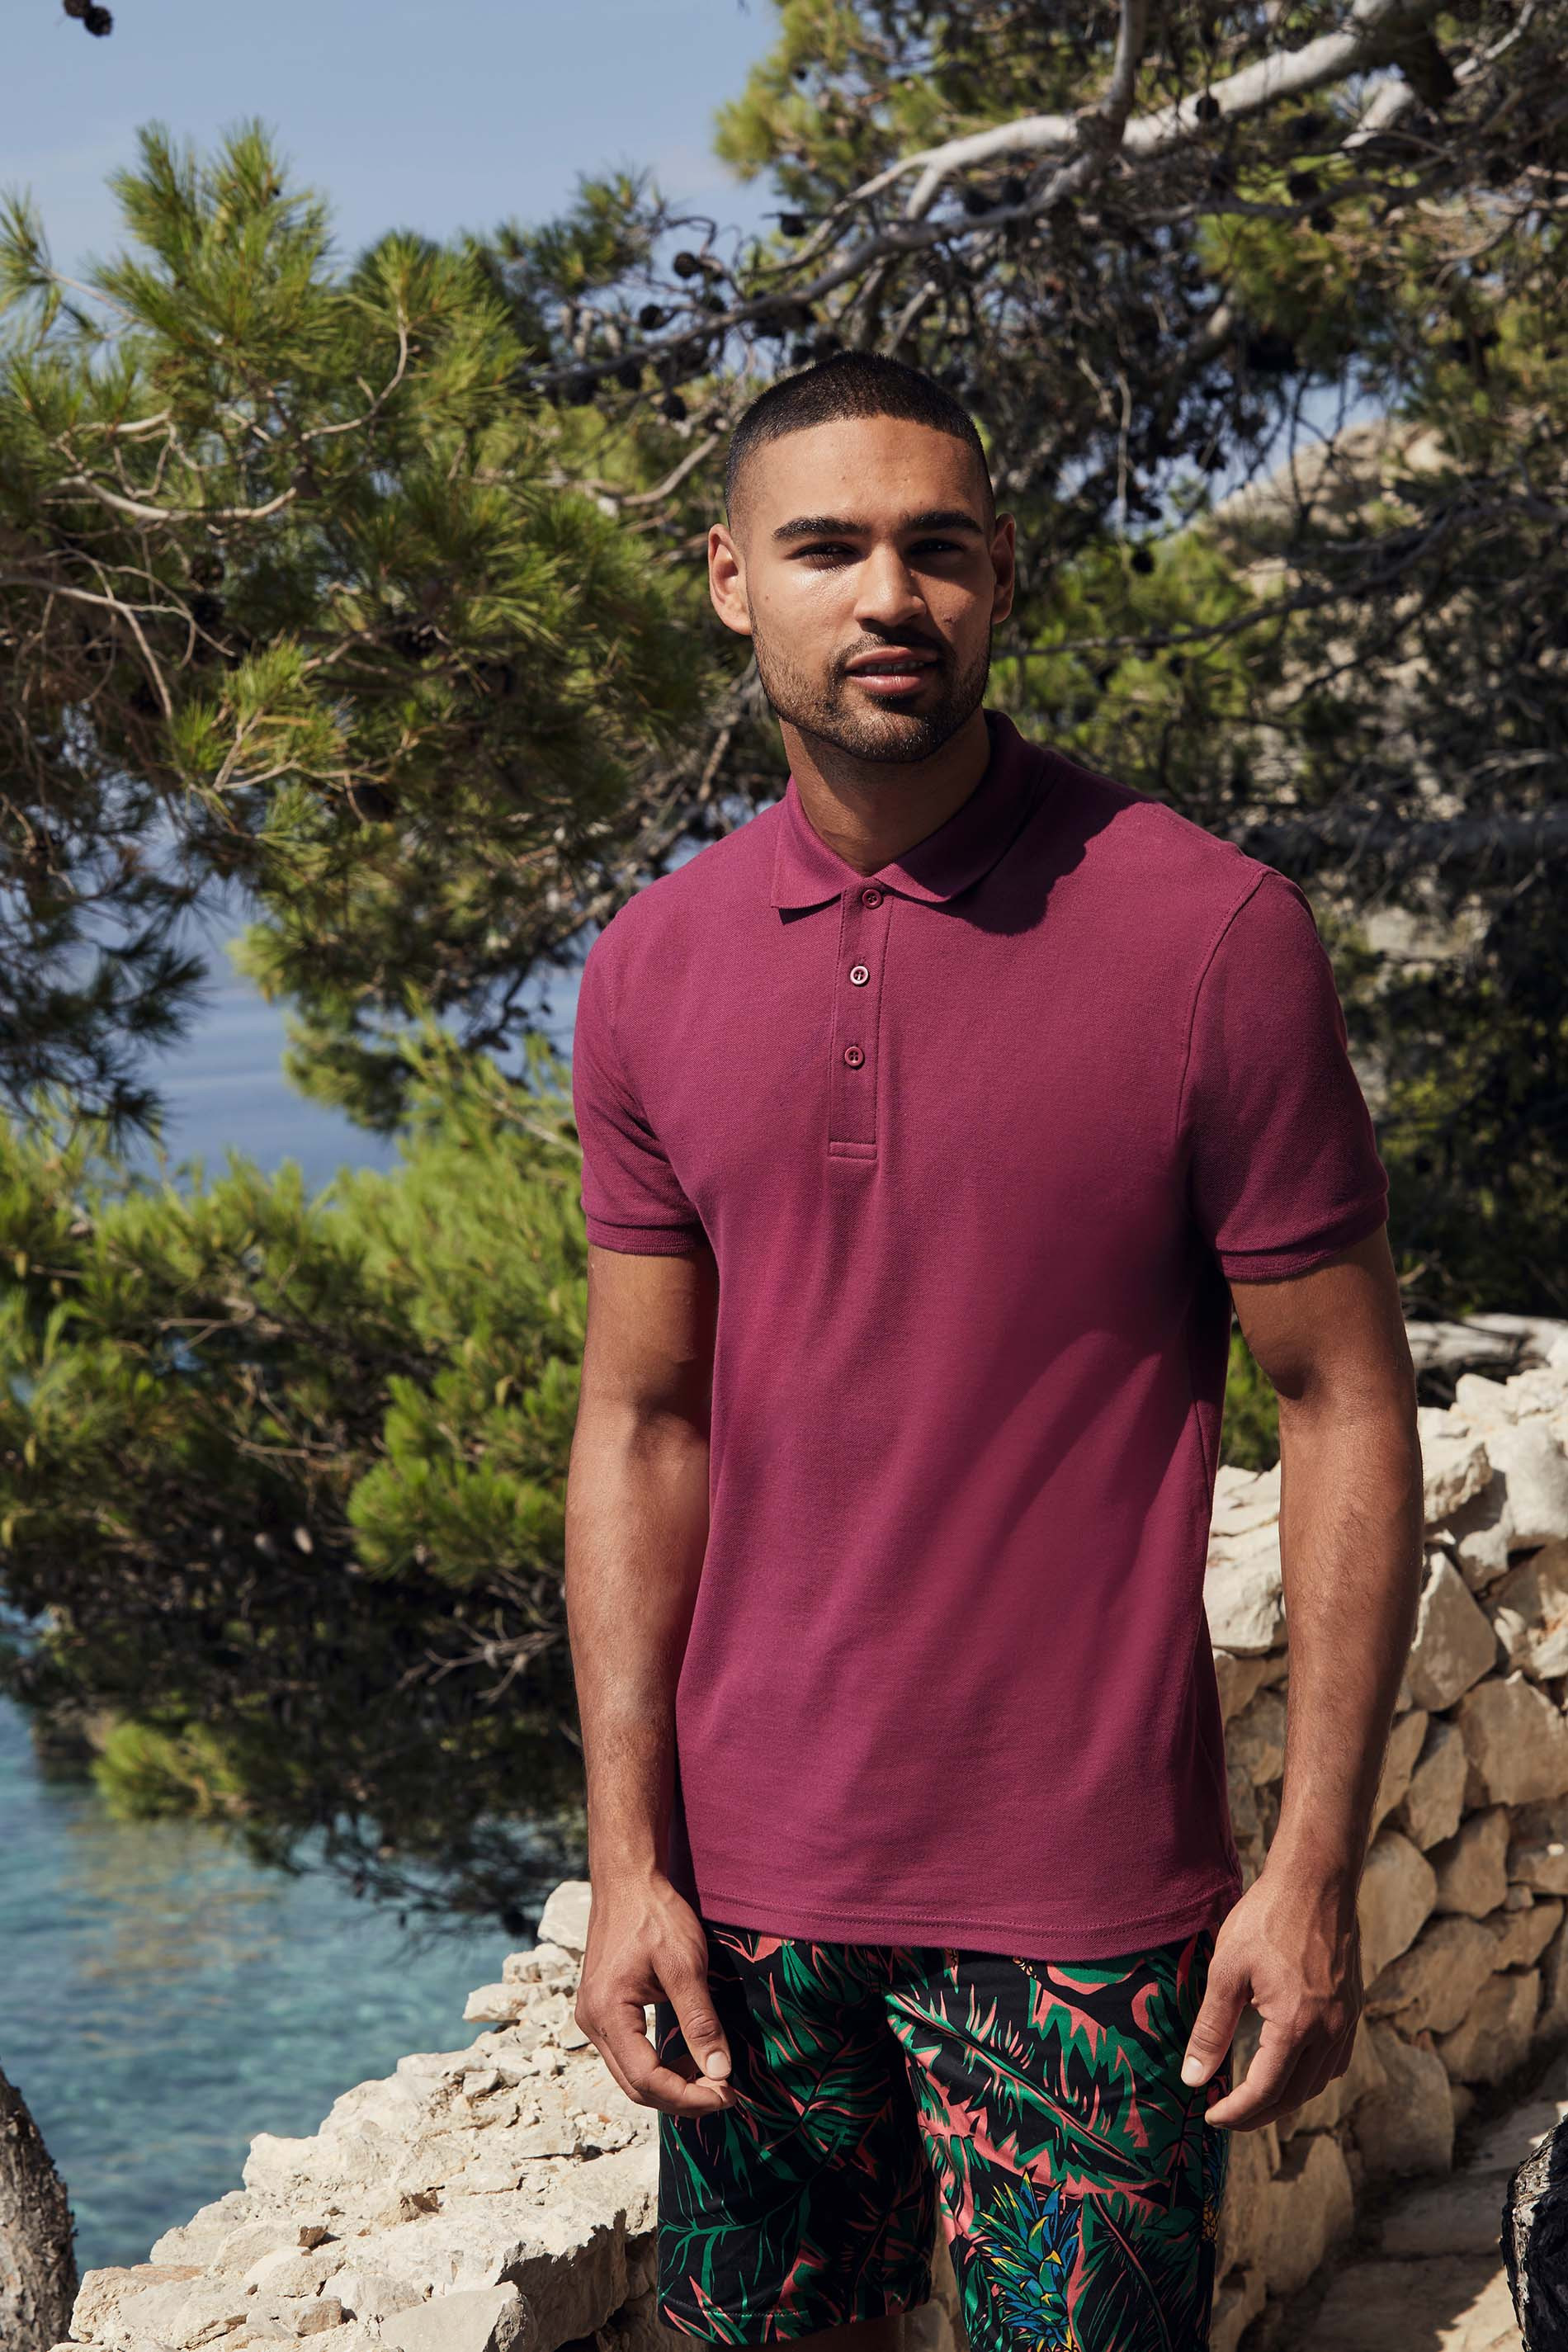 Fruit of the Loom POLO PREMIUM 63-218-0